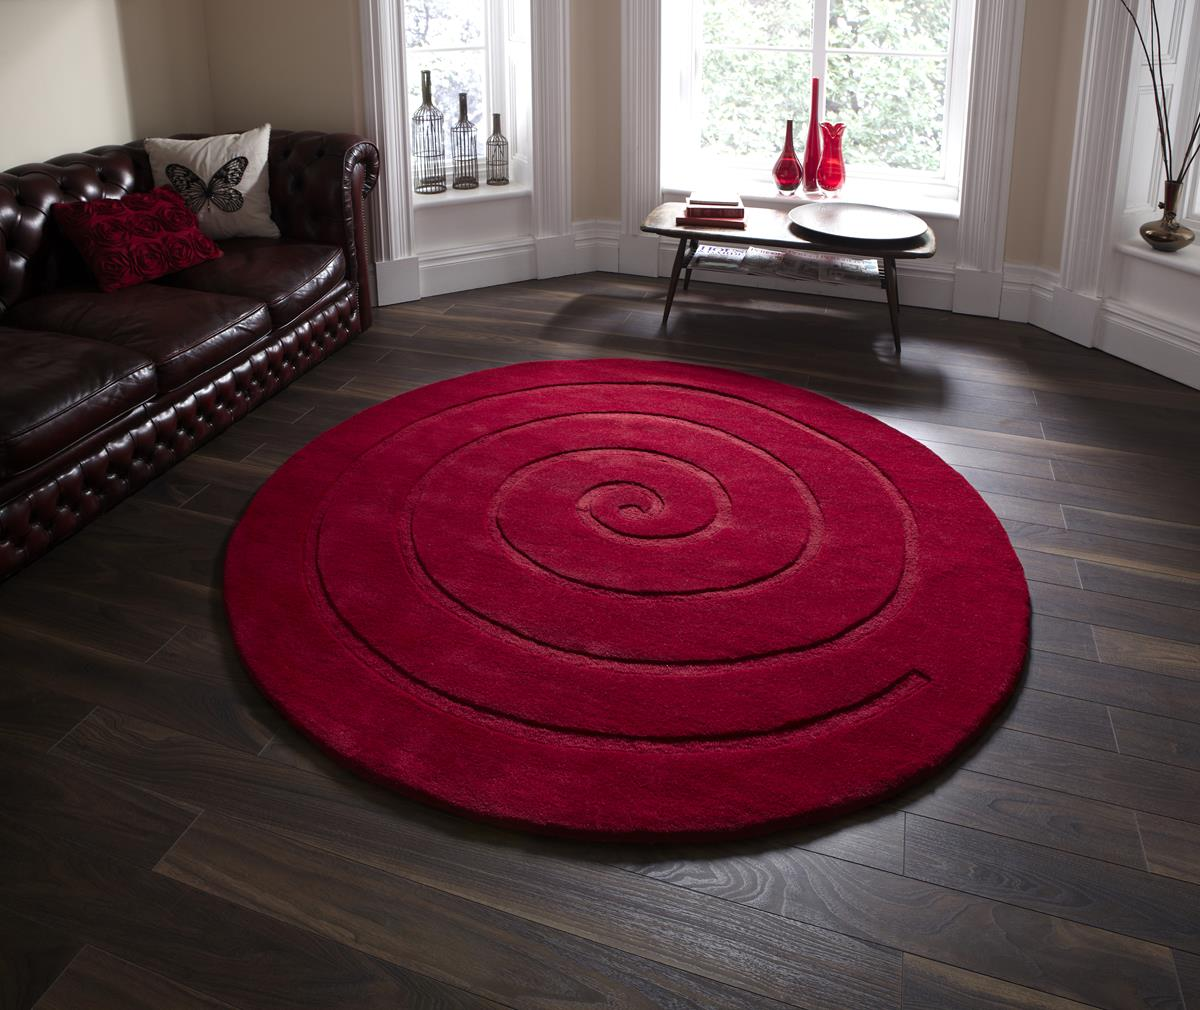 Red Circle Rug Home Decor